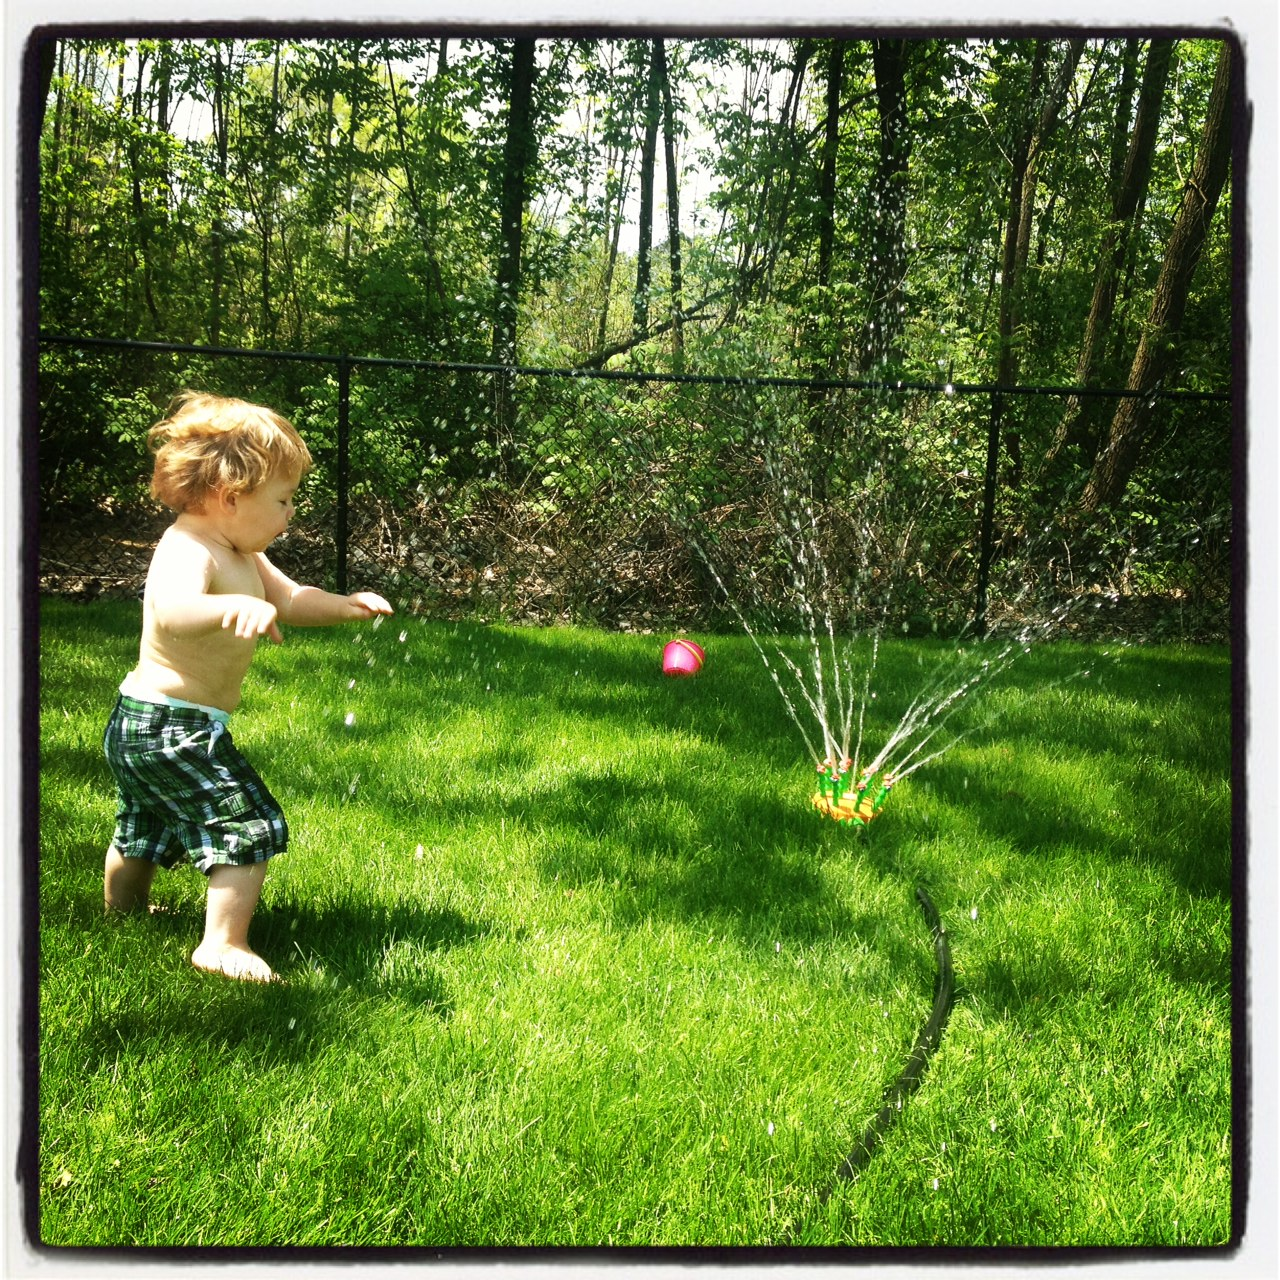 plaid shorts, baby chub, a sprinkler, and freedom. blissful.